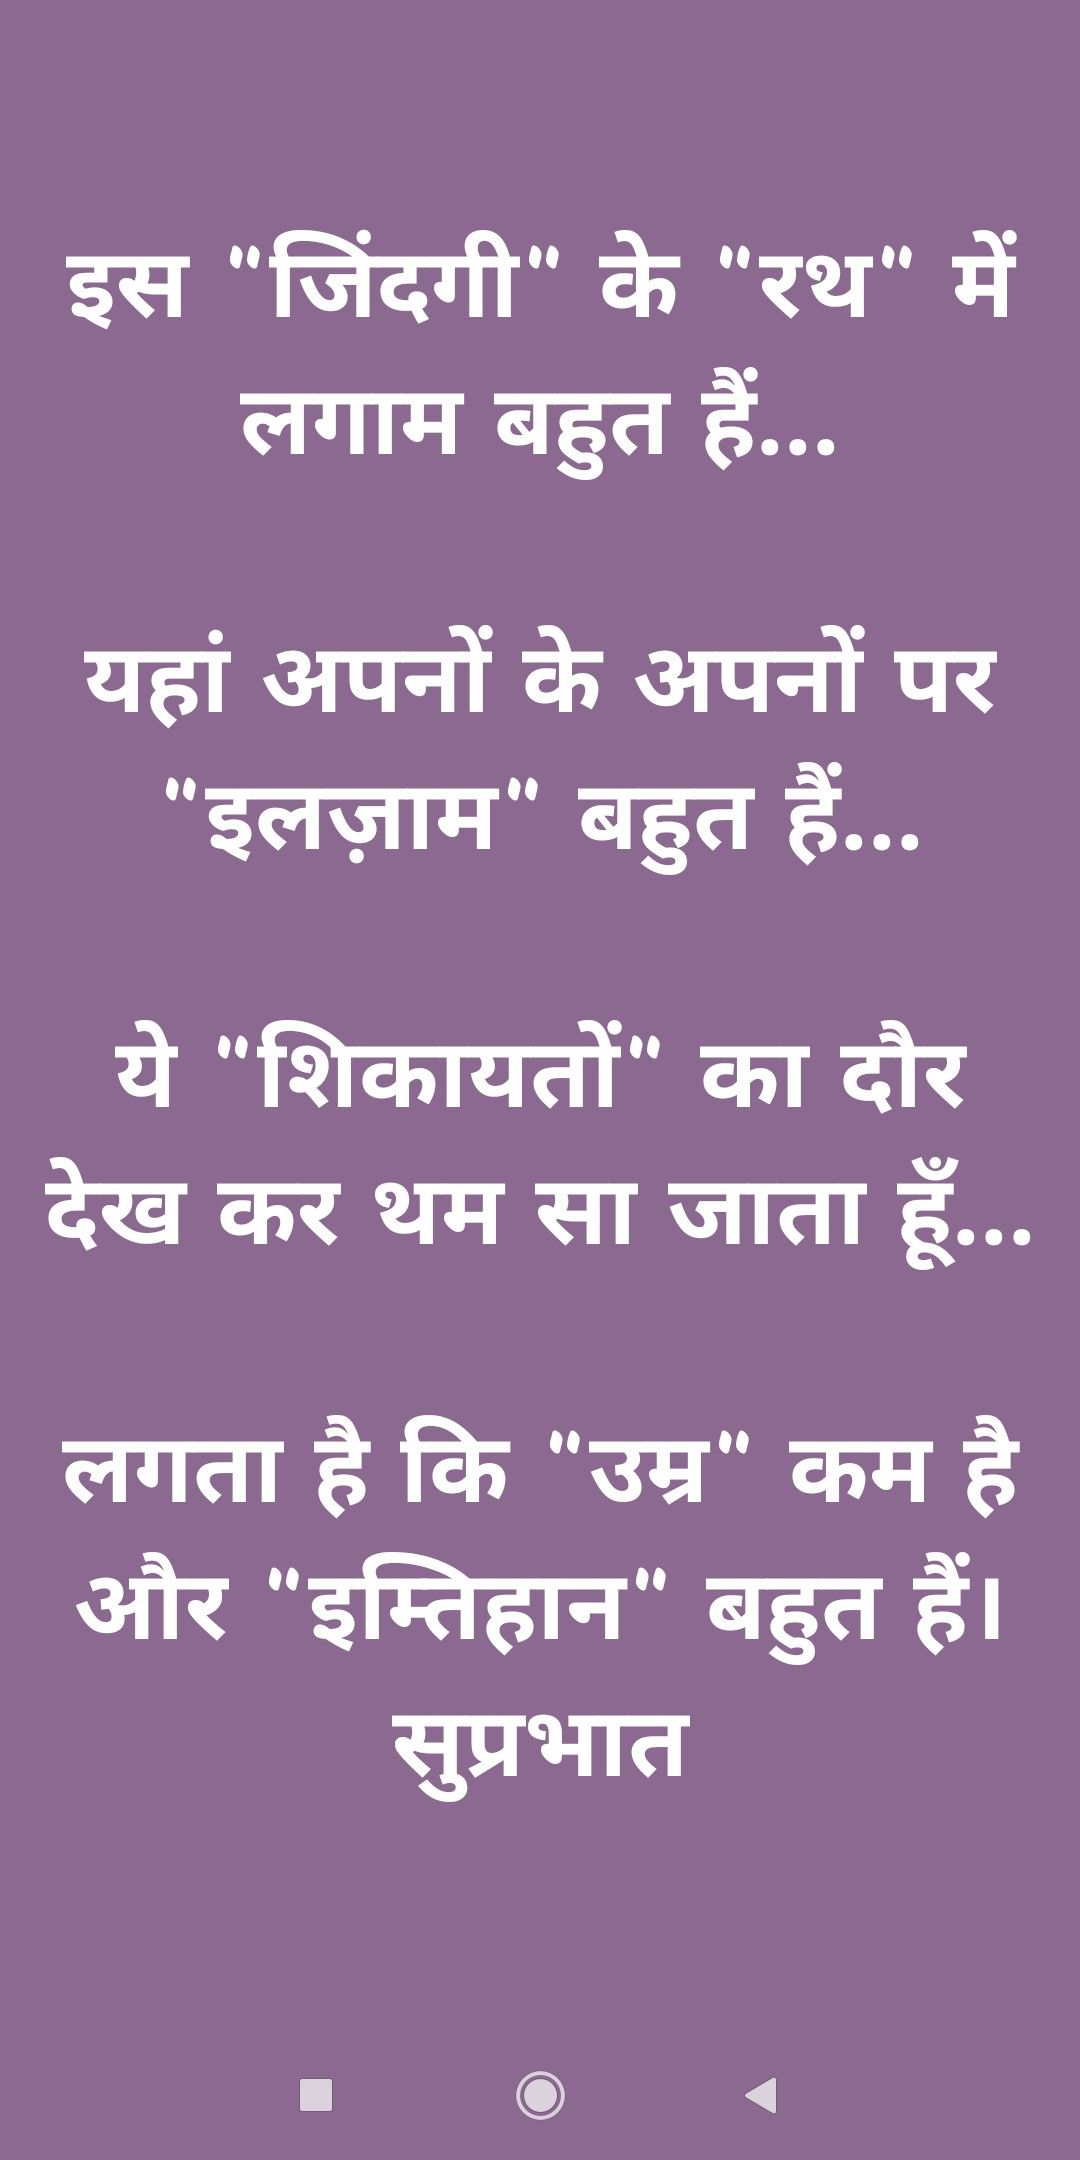 Pin by Uk on Hindi quotes in 2020 | Good morning messages ...